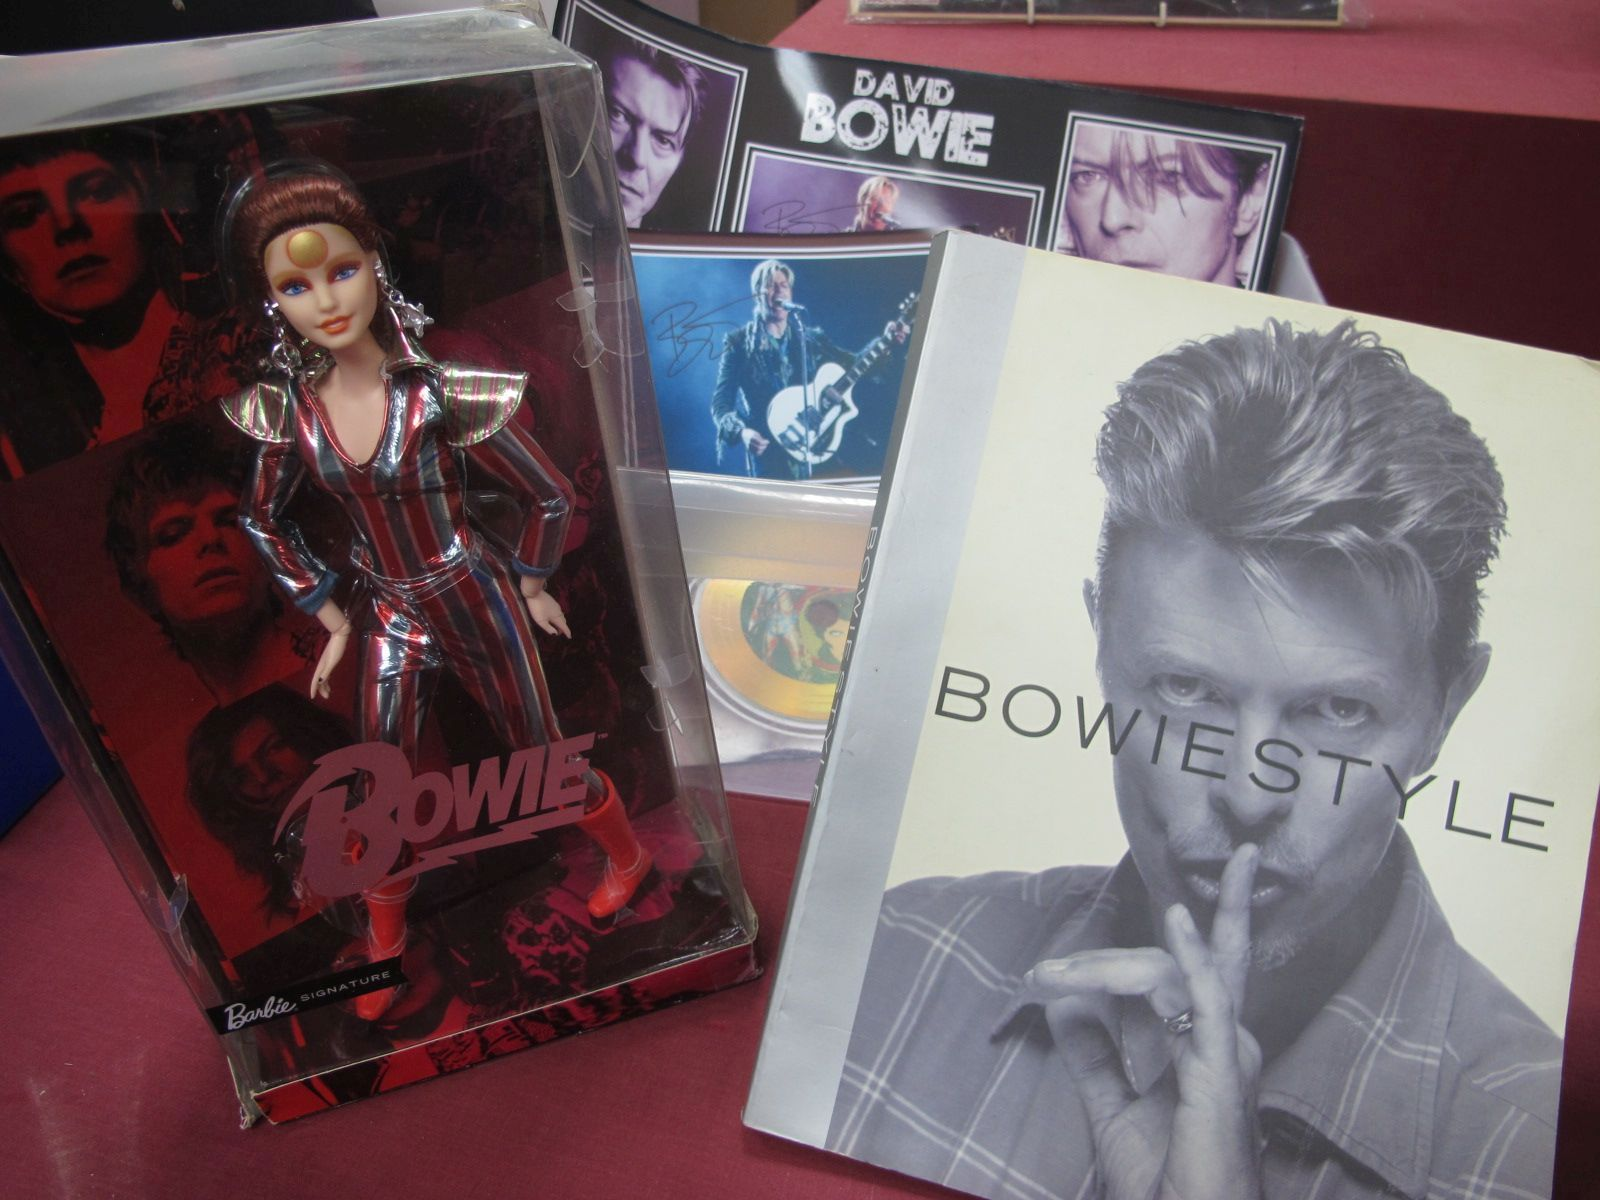 David Bowie Items, Bowie Barbie Doll, copyright 2019, The Book Bowie Style and two Bowie montages.